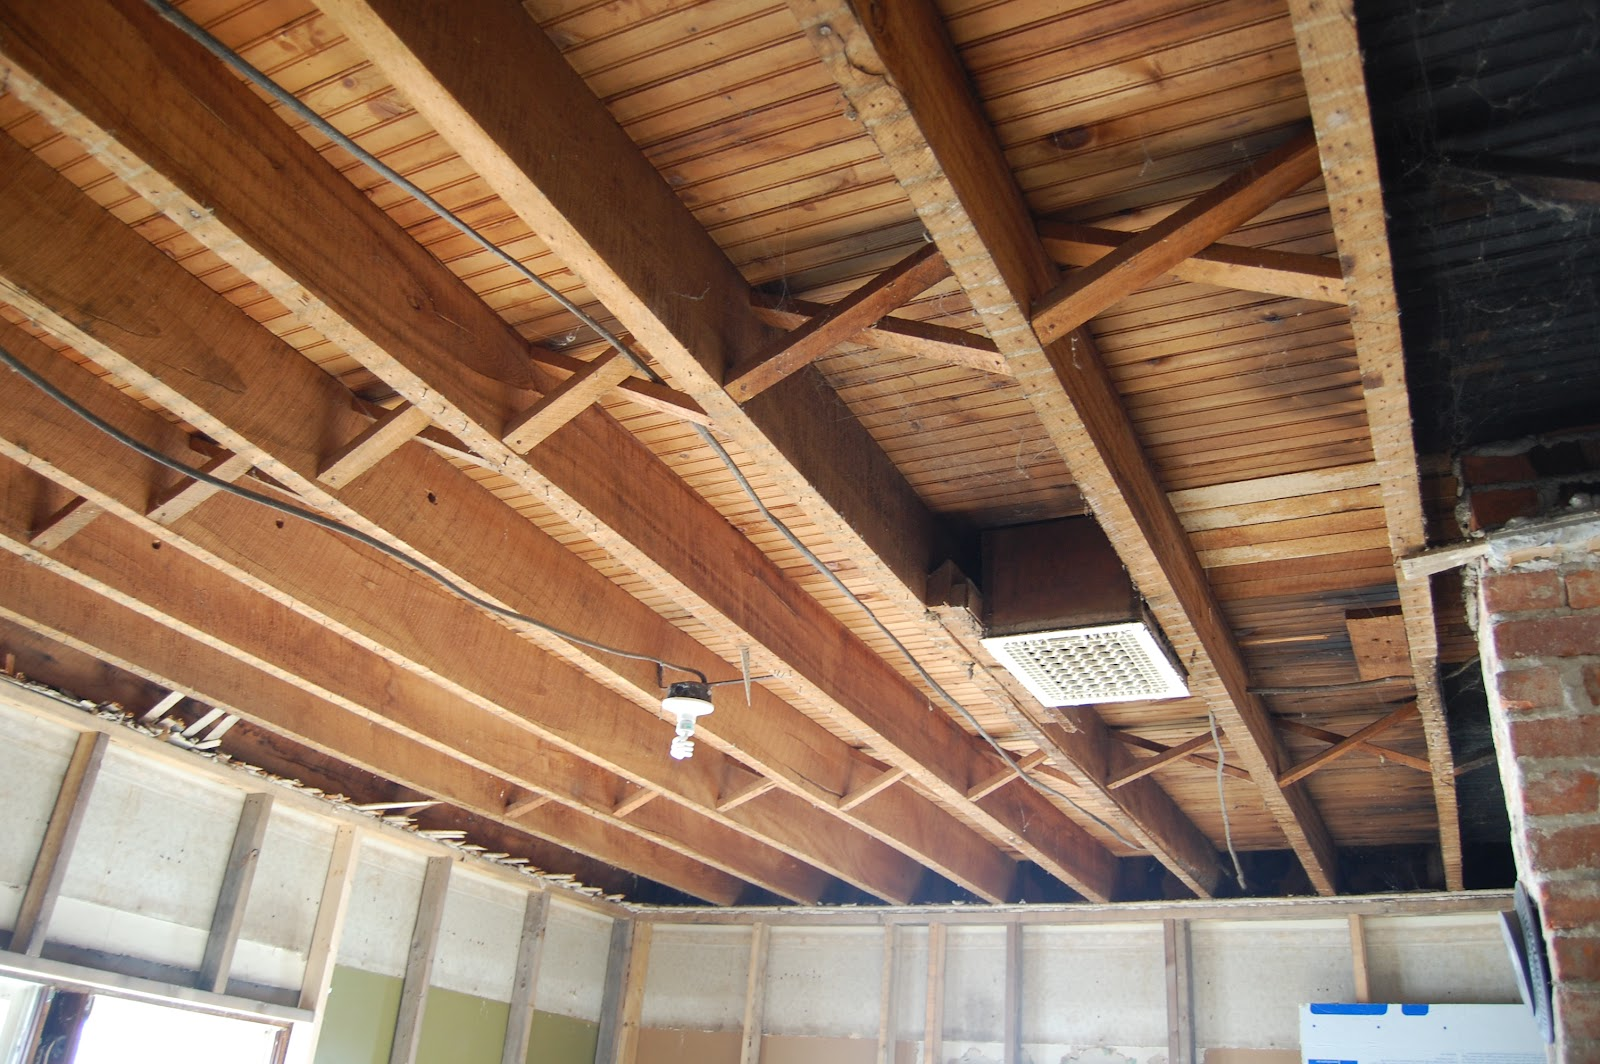 The Burk Haus Living Room Exposed Floor Joists Mayhem